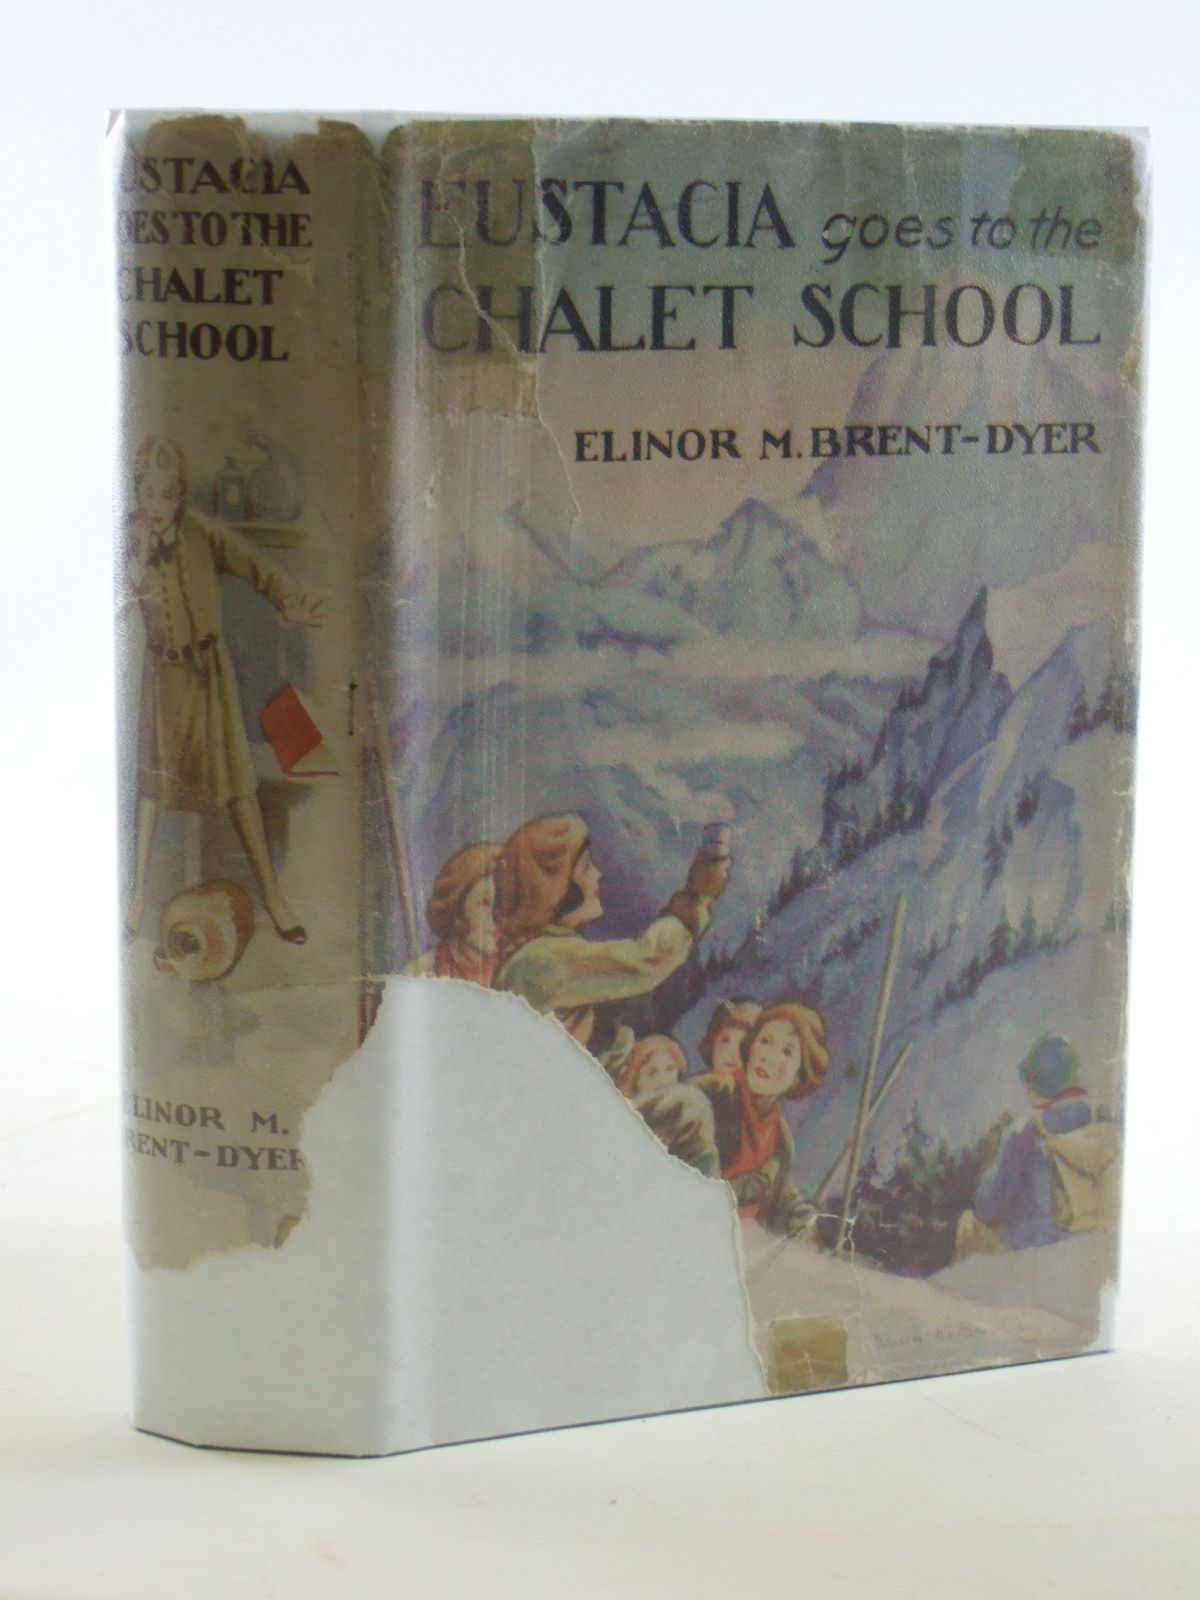 Photo of EUSTACIA GOES TO THE CHALET SCHOOL written by Brent-Dyer, Elinor M. illustrated by Brisley, Nina K. published by W. & R. Chambers Limited (STOCK CODE: 2106778)  for sale by Stella & Rose's Books